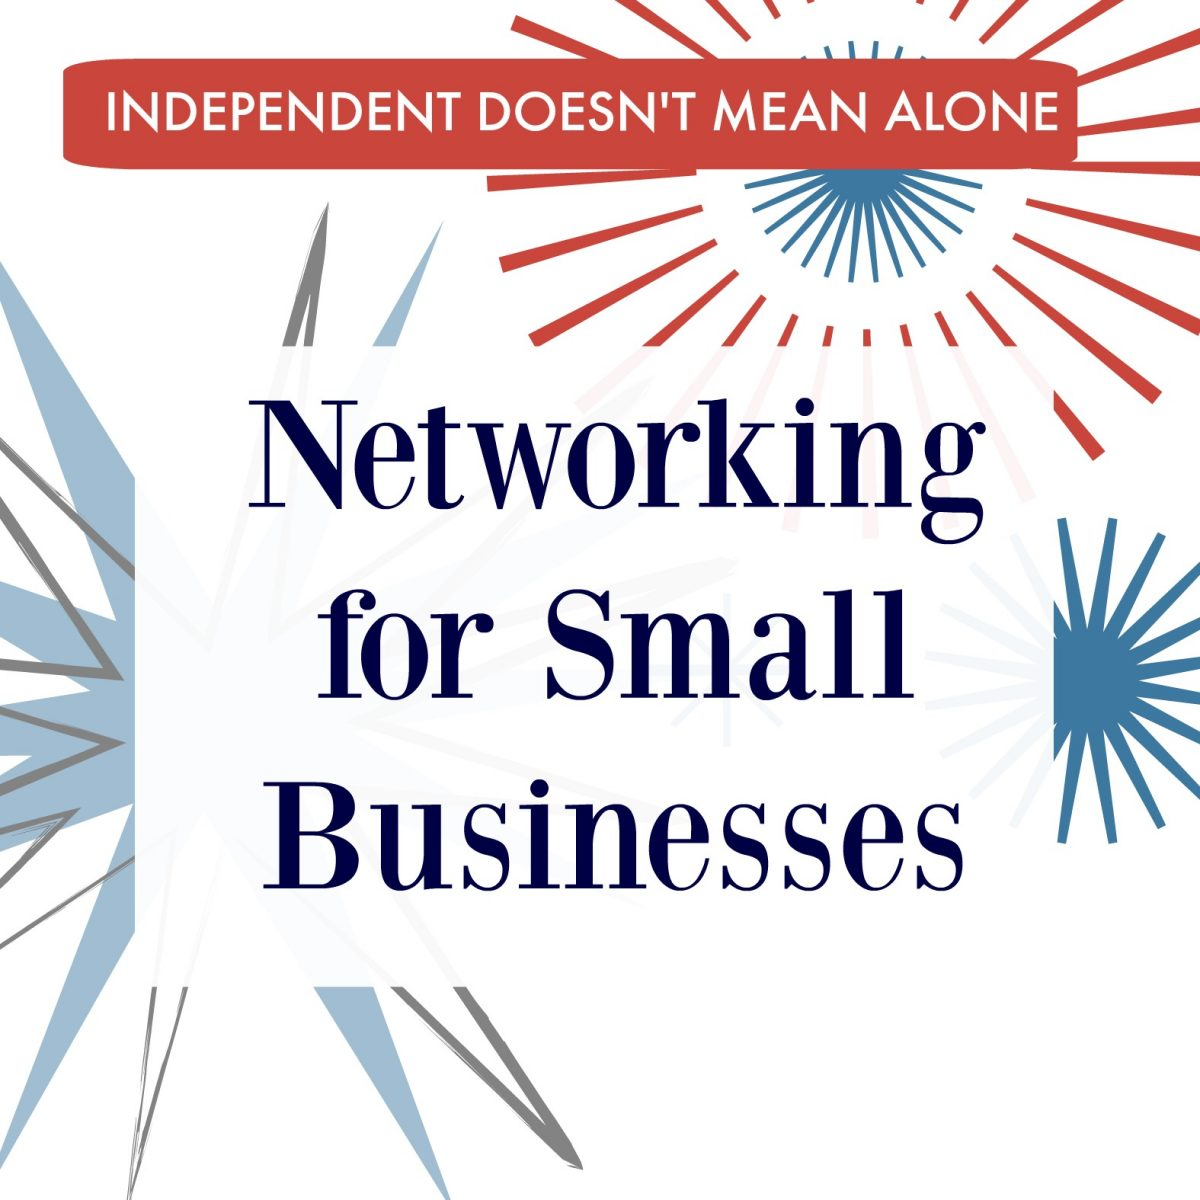 Networking for Small Businesses